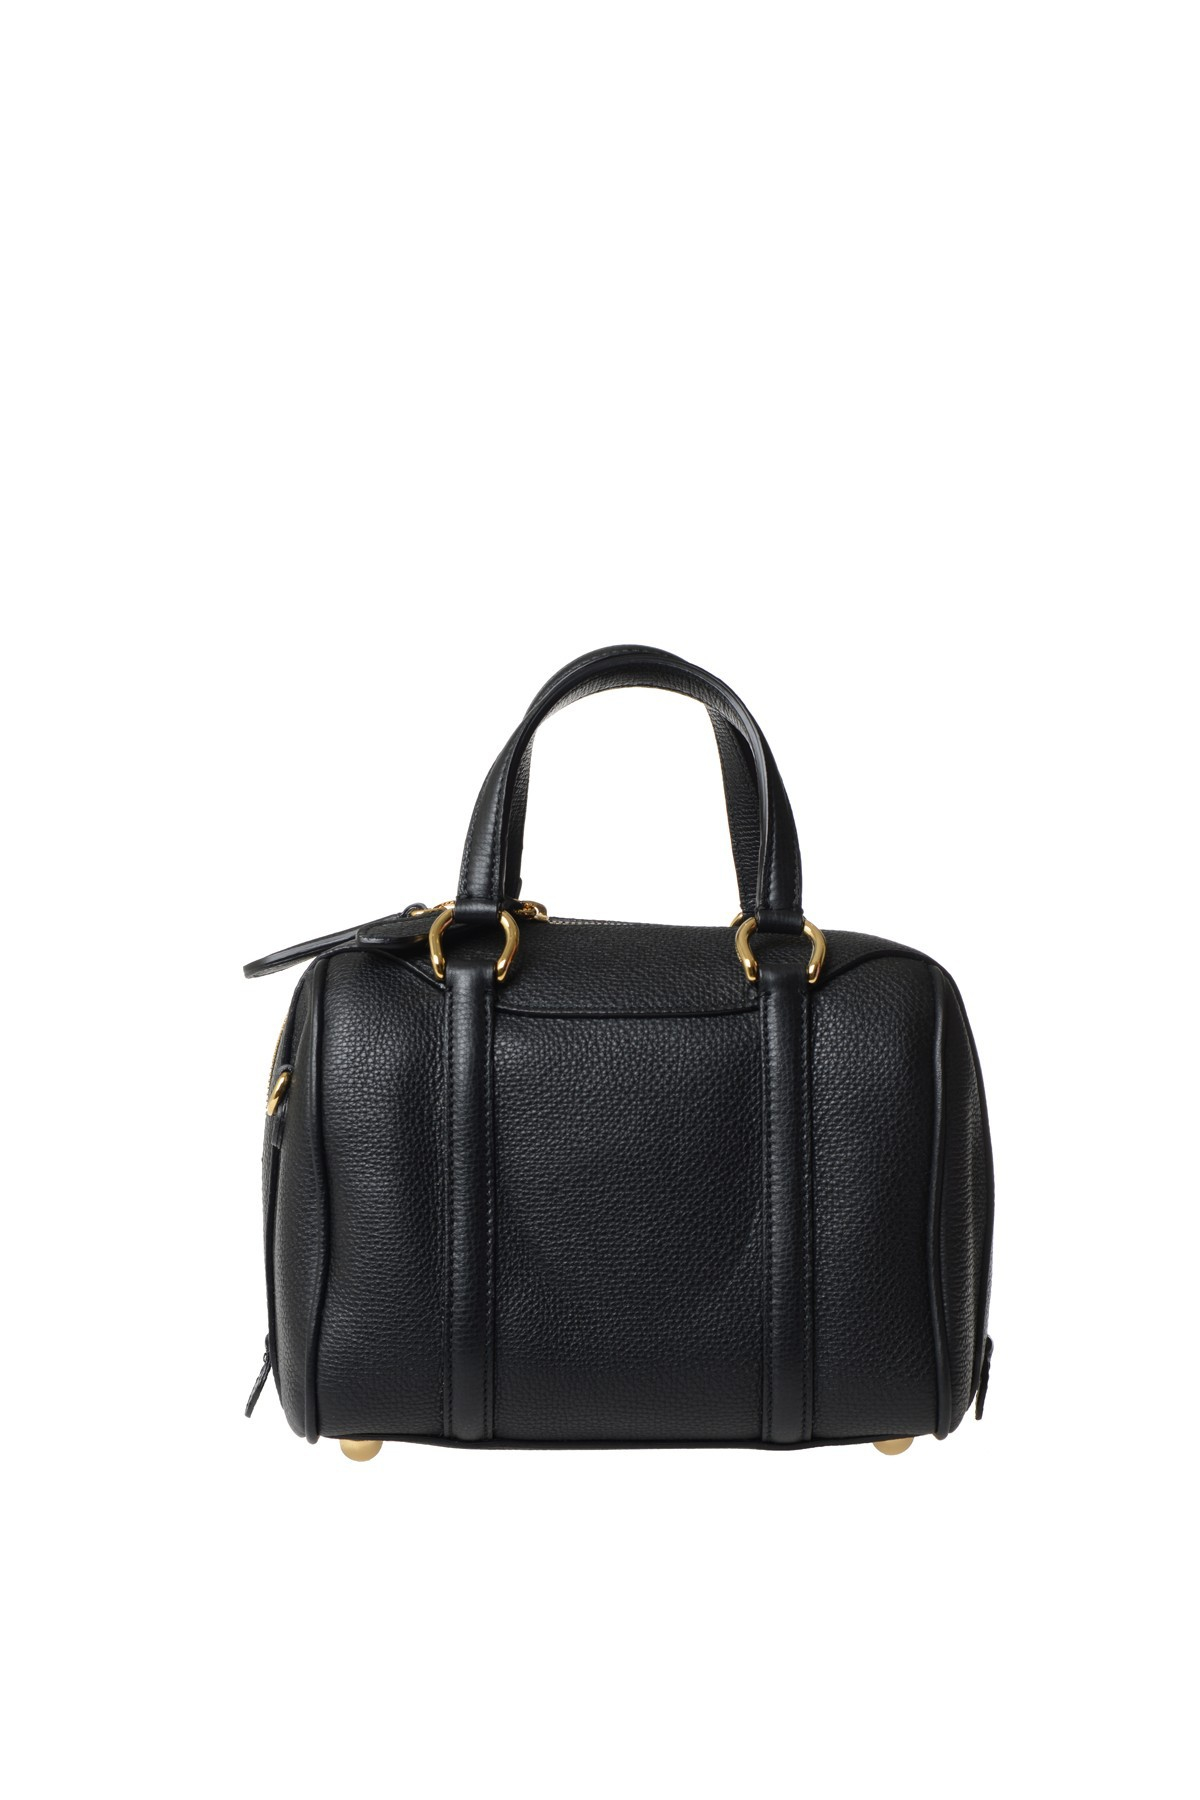 ef862b4132e Burberry Leather Mini Bag in Black